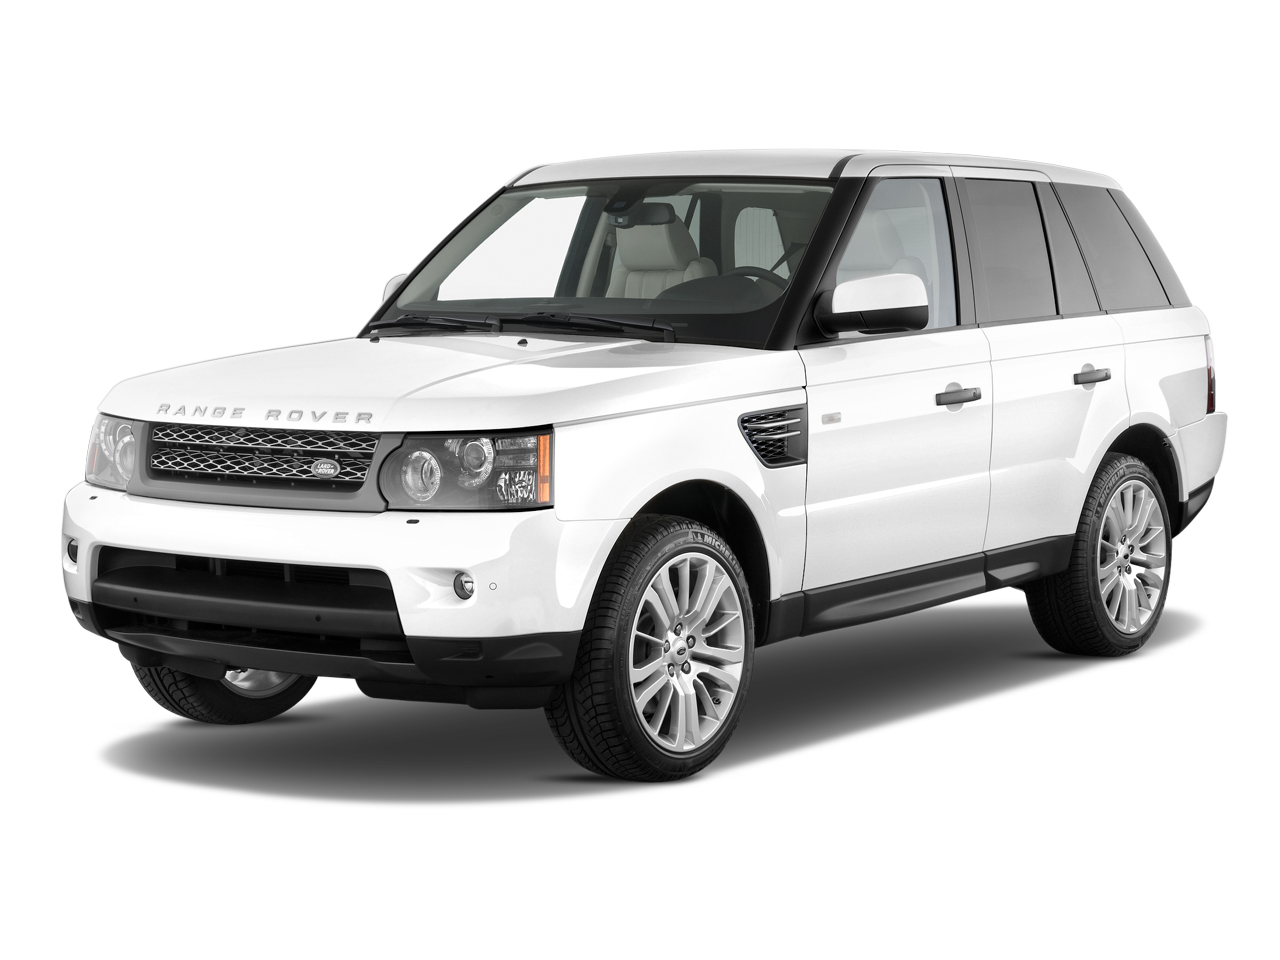 Land Rover Los Angeles >> 2010 Range Rover Sport: All-New Technology